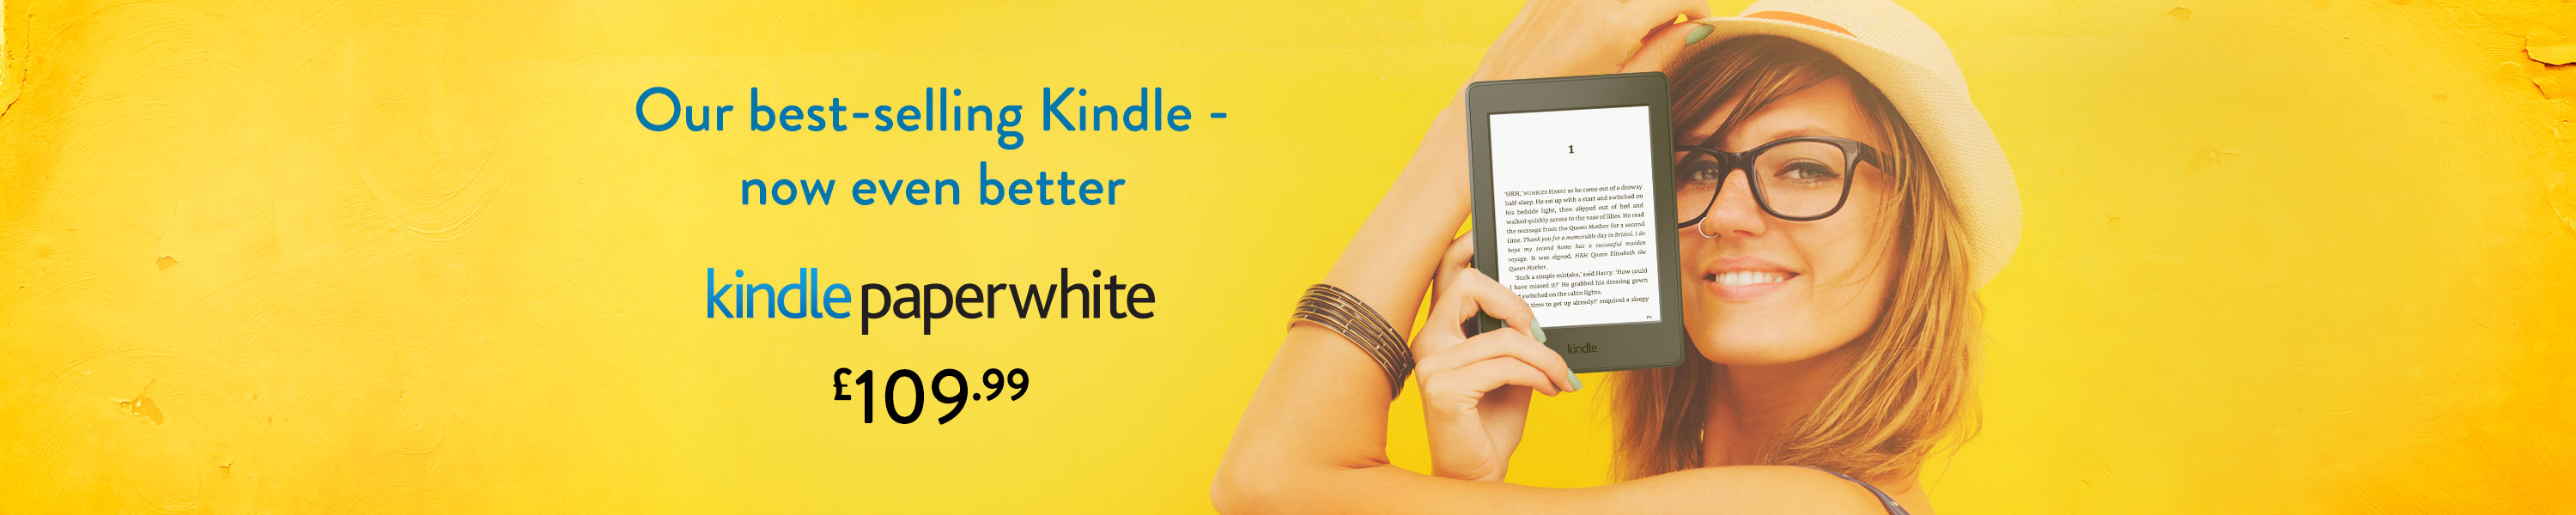 Kindle Paperwhite - our best-selling Kindle - now even better